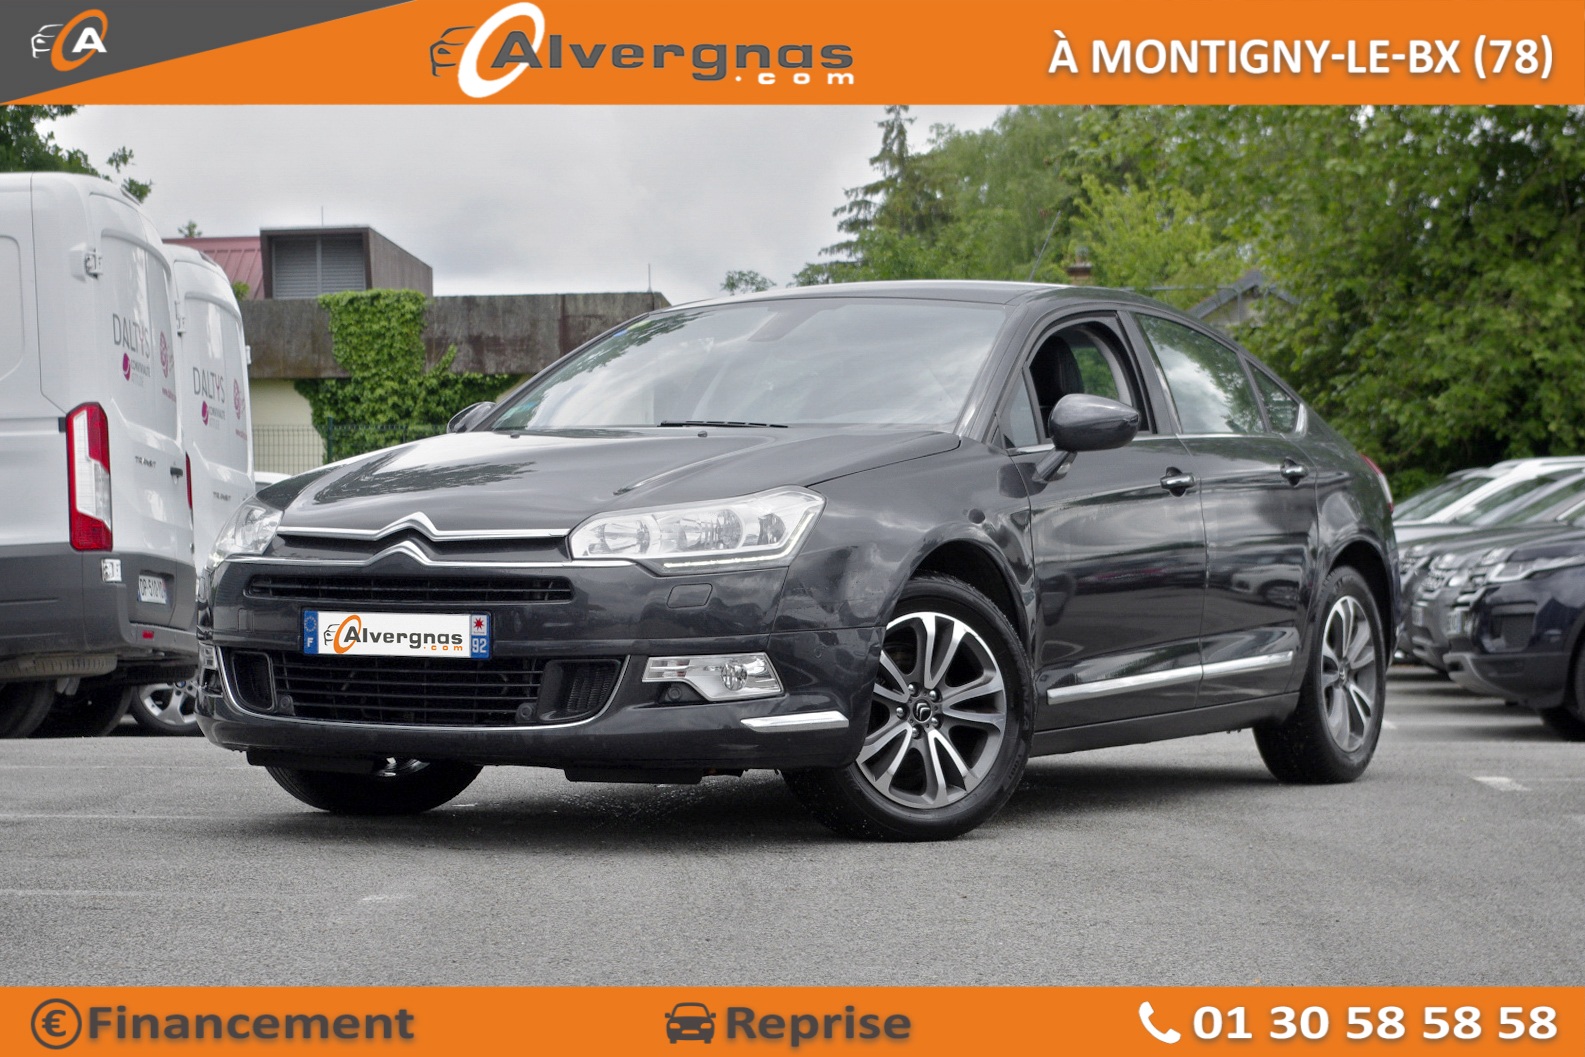 CITROEN C5 d'occasion sur Paris